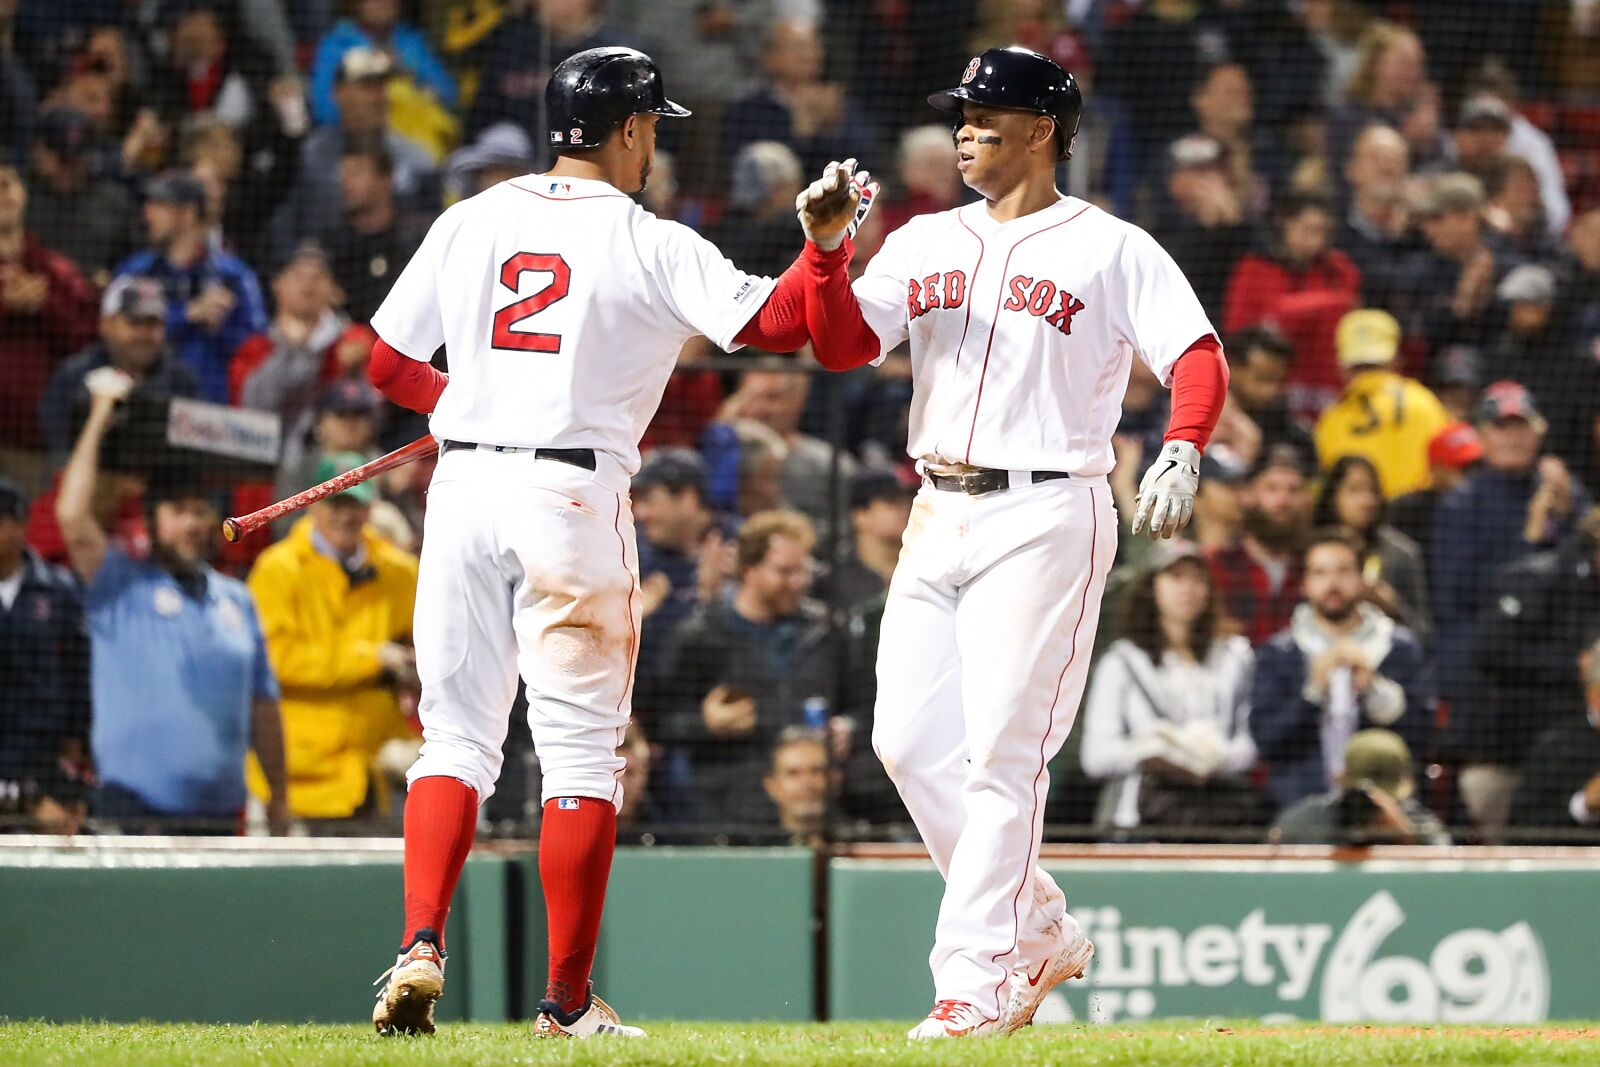 Red Sox trio accomplish milestone never before seen in franchise history